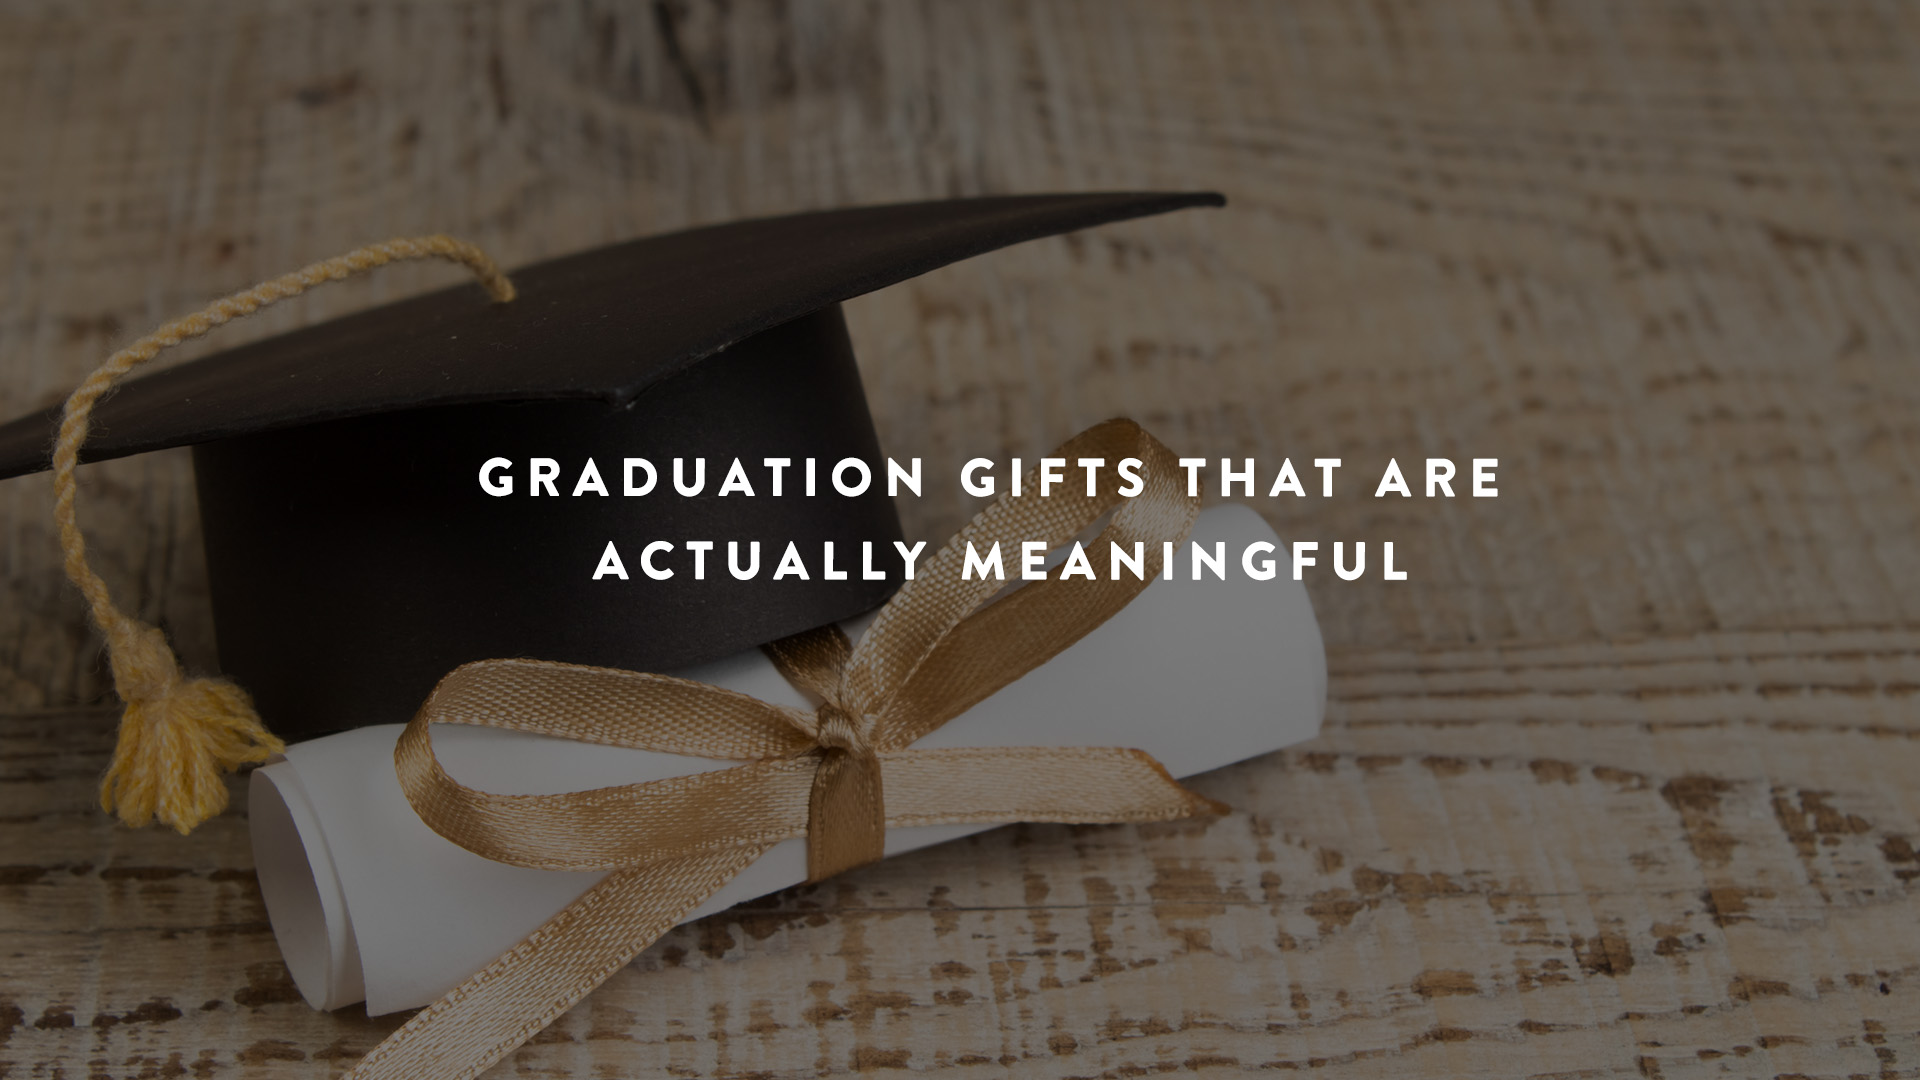 Graduation Gifts that are meaningful